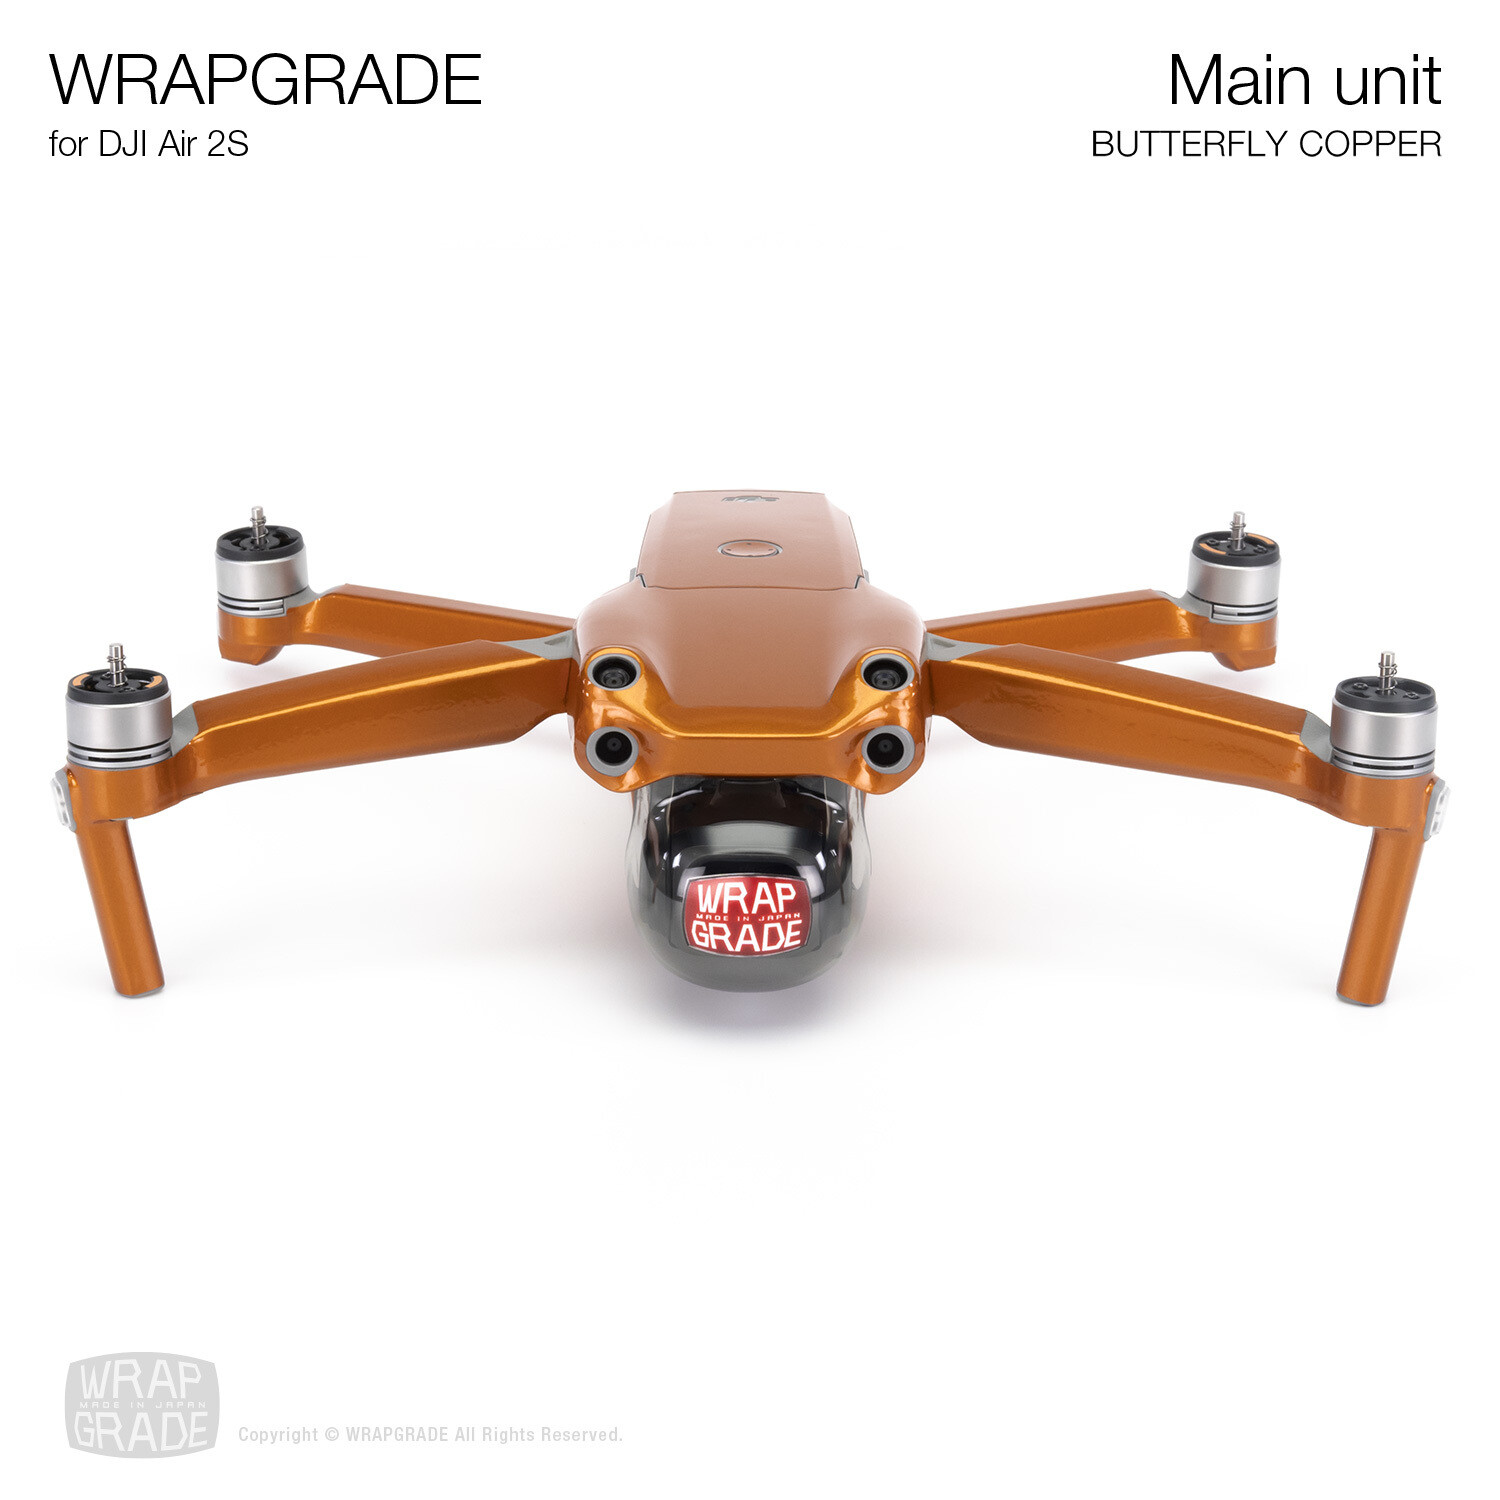 Wrapgrade Skin for DJI Air 2S | Main Unit (BUTTERFLY COPPER)